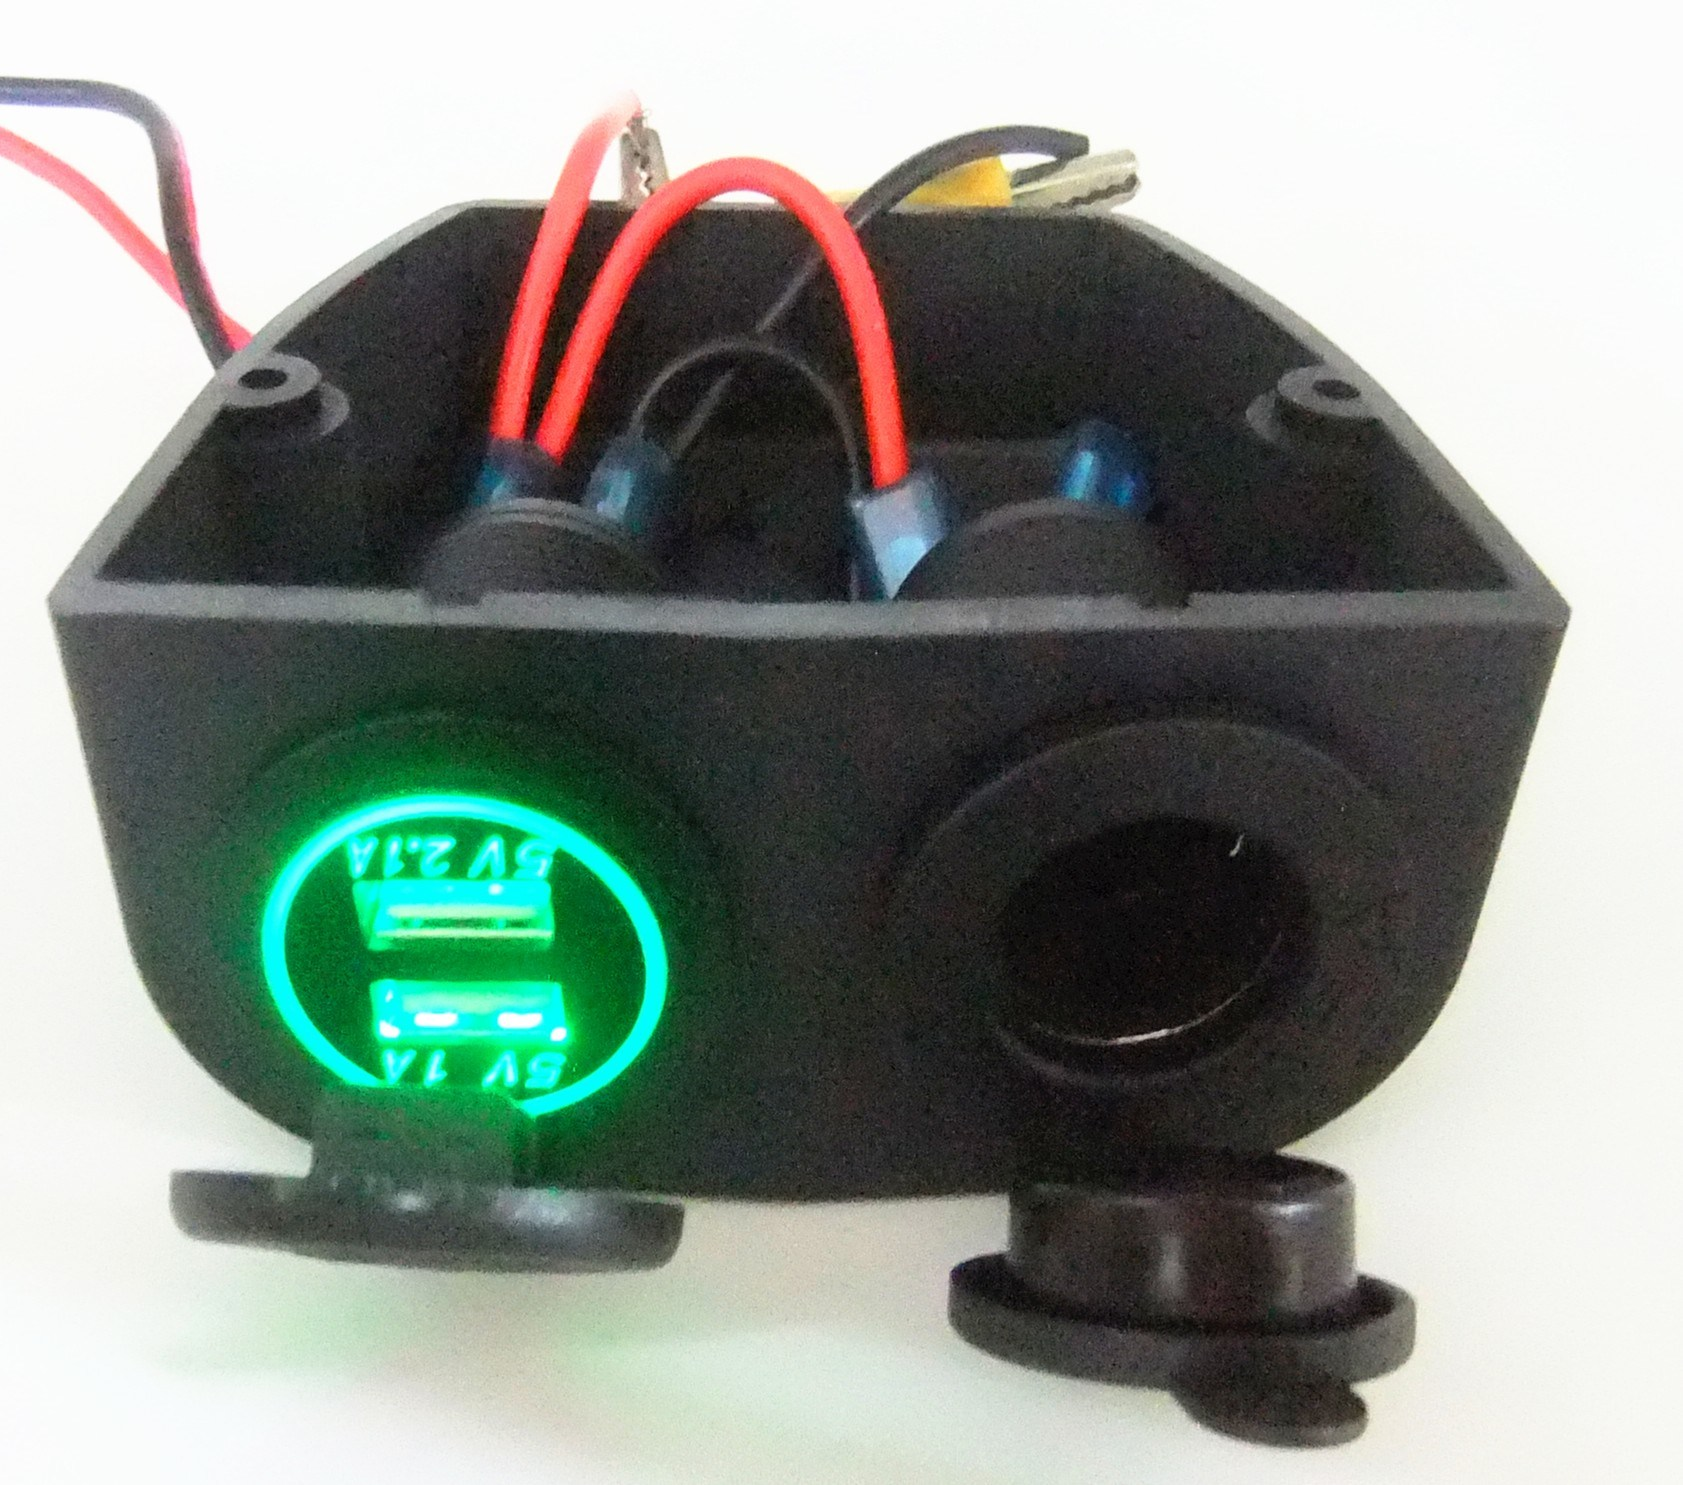 Waterproof Dual Usb Charger Power And Cigarette Lighter Socket With Wiring On Motorcycle The Picture